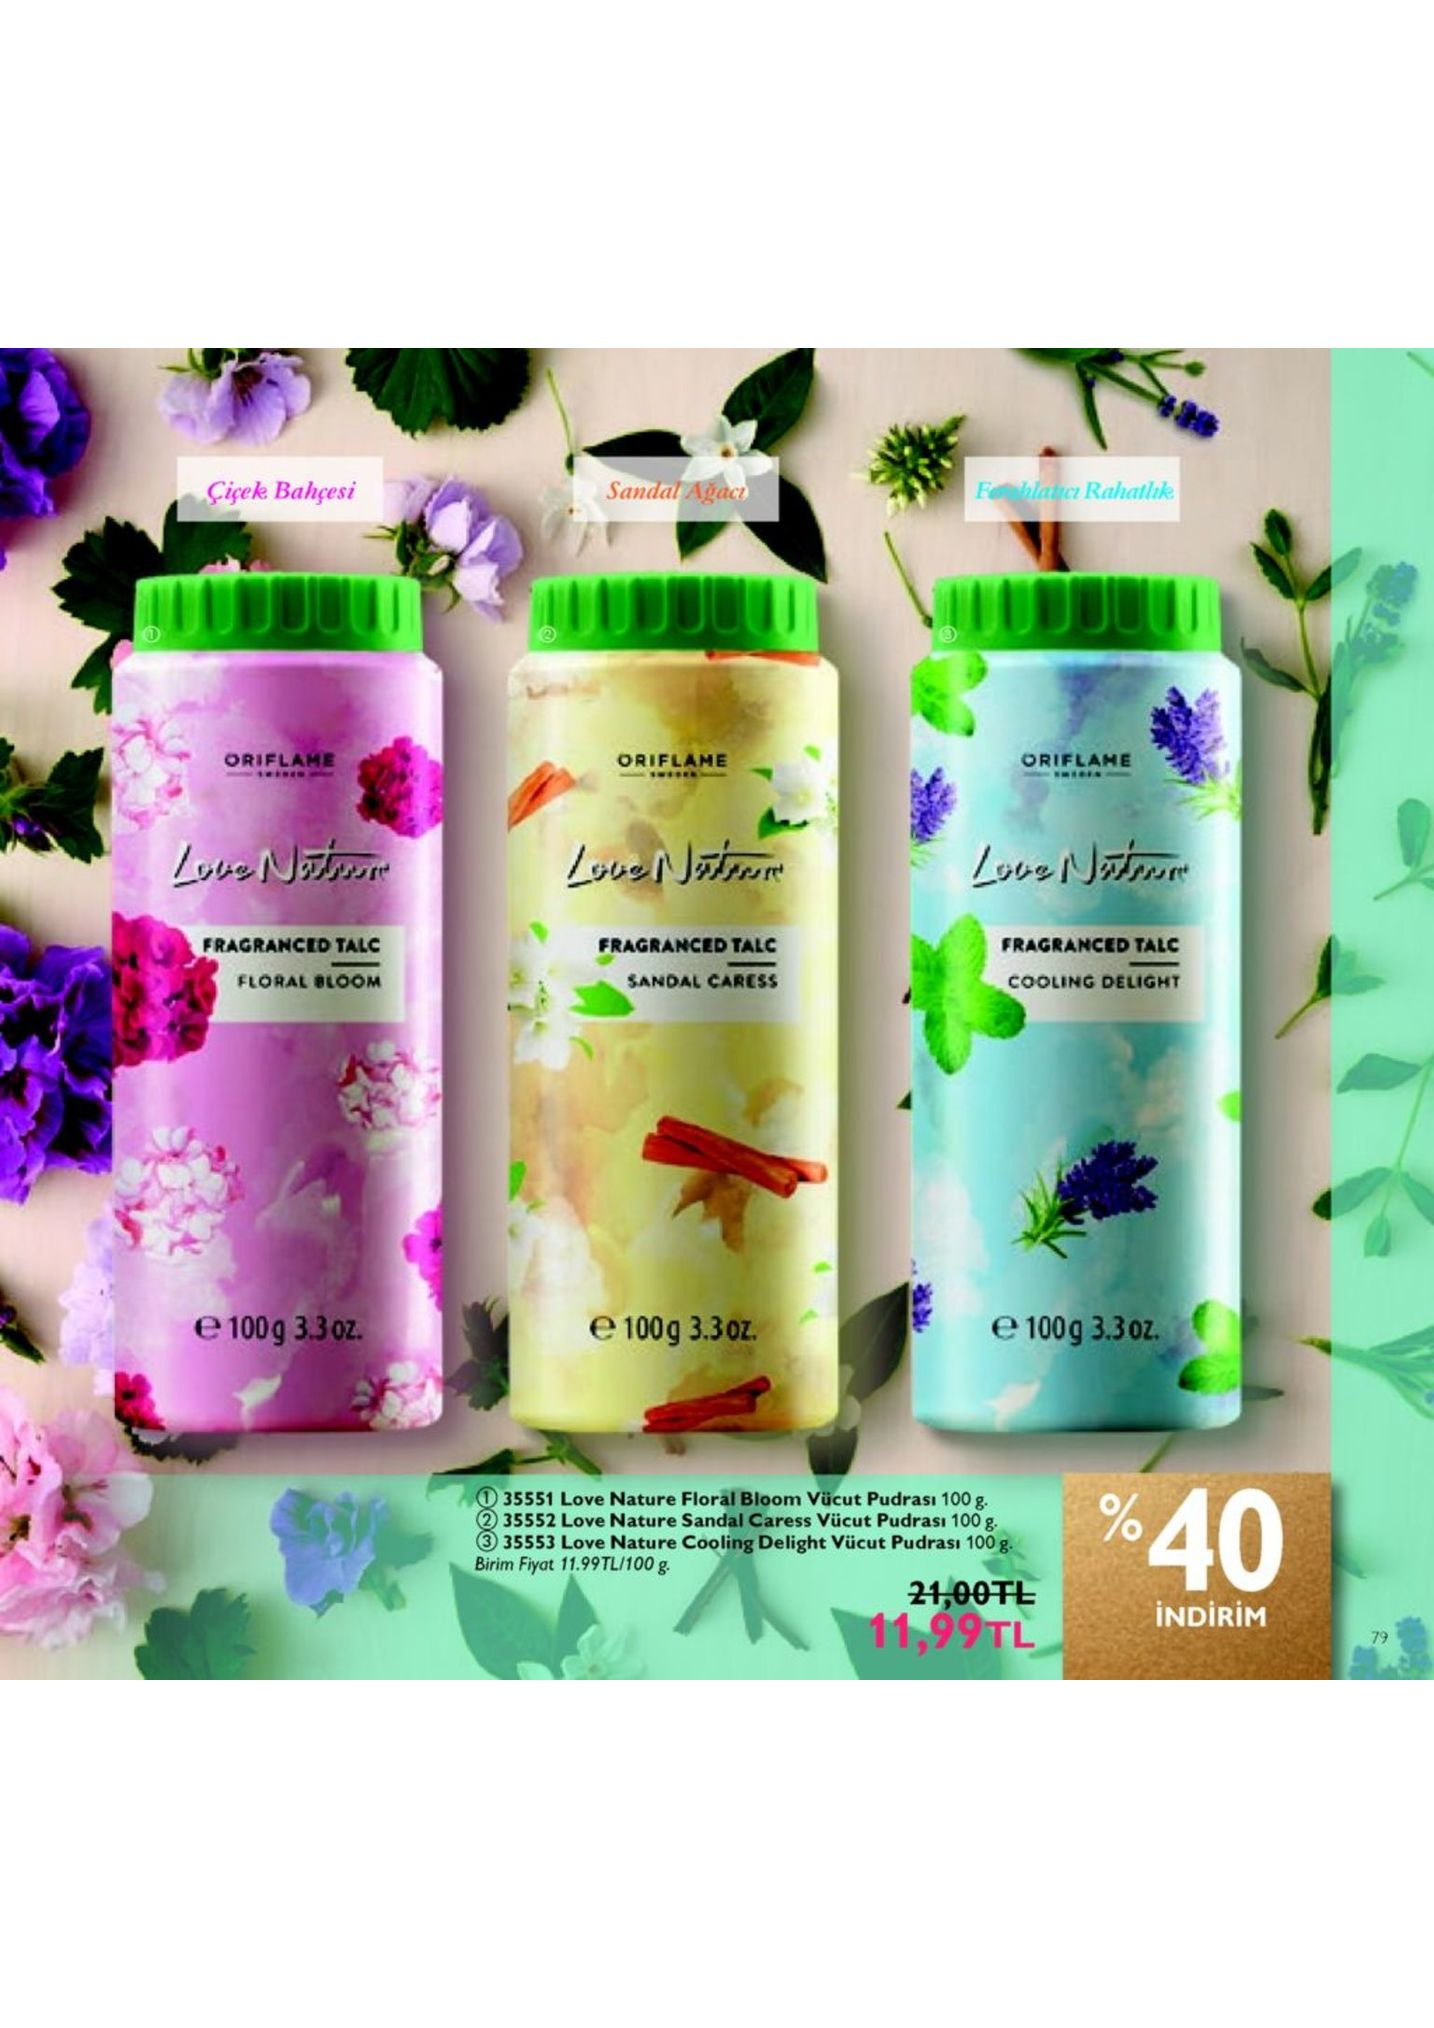 ciçek bahçesi sandal ağac f hlatic rahatlik oriflame oriflame oriflahe fragranced talc fragranced talc fragranced talc floral bloom sandal caress cooling delight e 1009 330z. 1009 3.302 e100g 3.30z. e100g 3.30. 35551 love nature floral bloom vücut pudrası 100 g ~2.00tl %40 2 35552 love nature sandal caress vücut pudrası 100 g 35553 love nature cooling delight viücut pudrası 100 g. birim fiyat 11.99tl/100 g. indirim 79tl 79